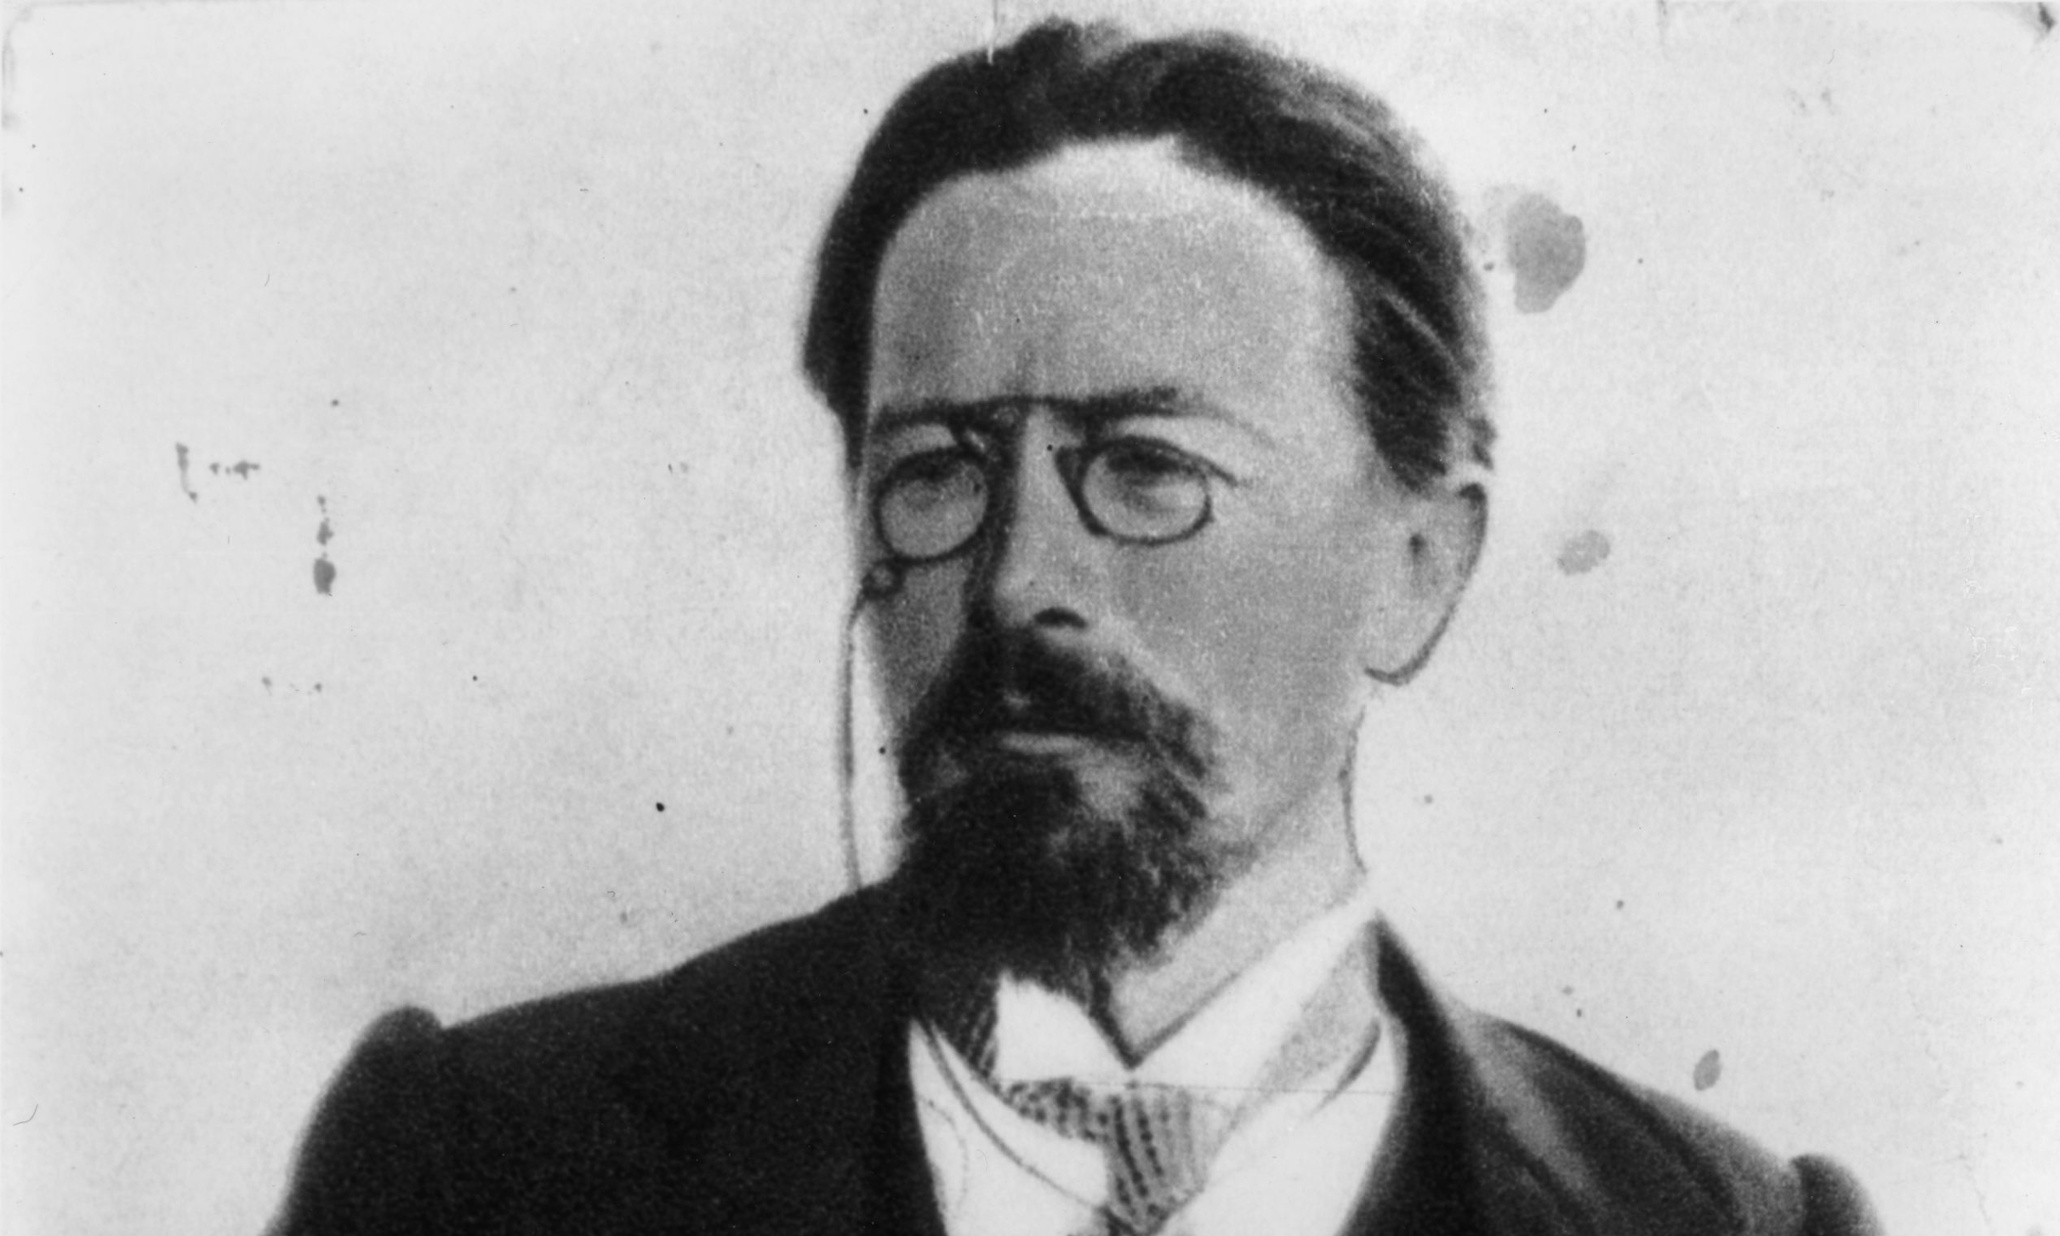 From the archive, 3 June 1919: Chekhov's The Seagull reviewed